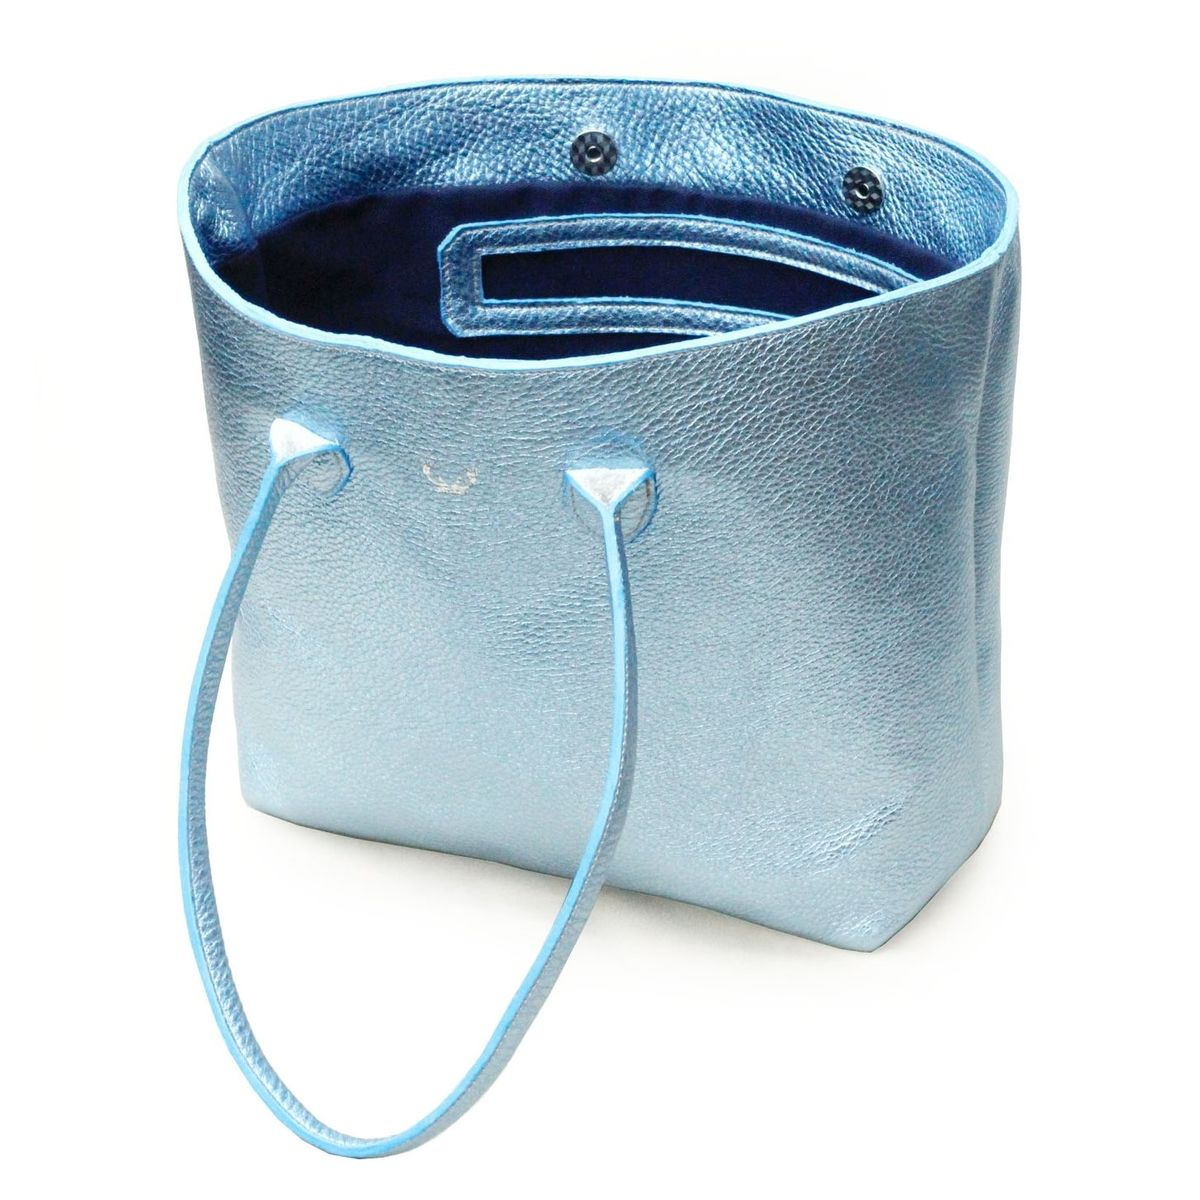 *NEW* Metallic Blue Opal Tote Bag - product images  of